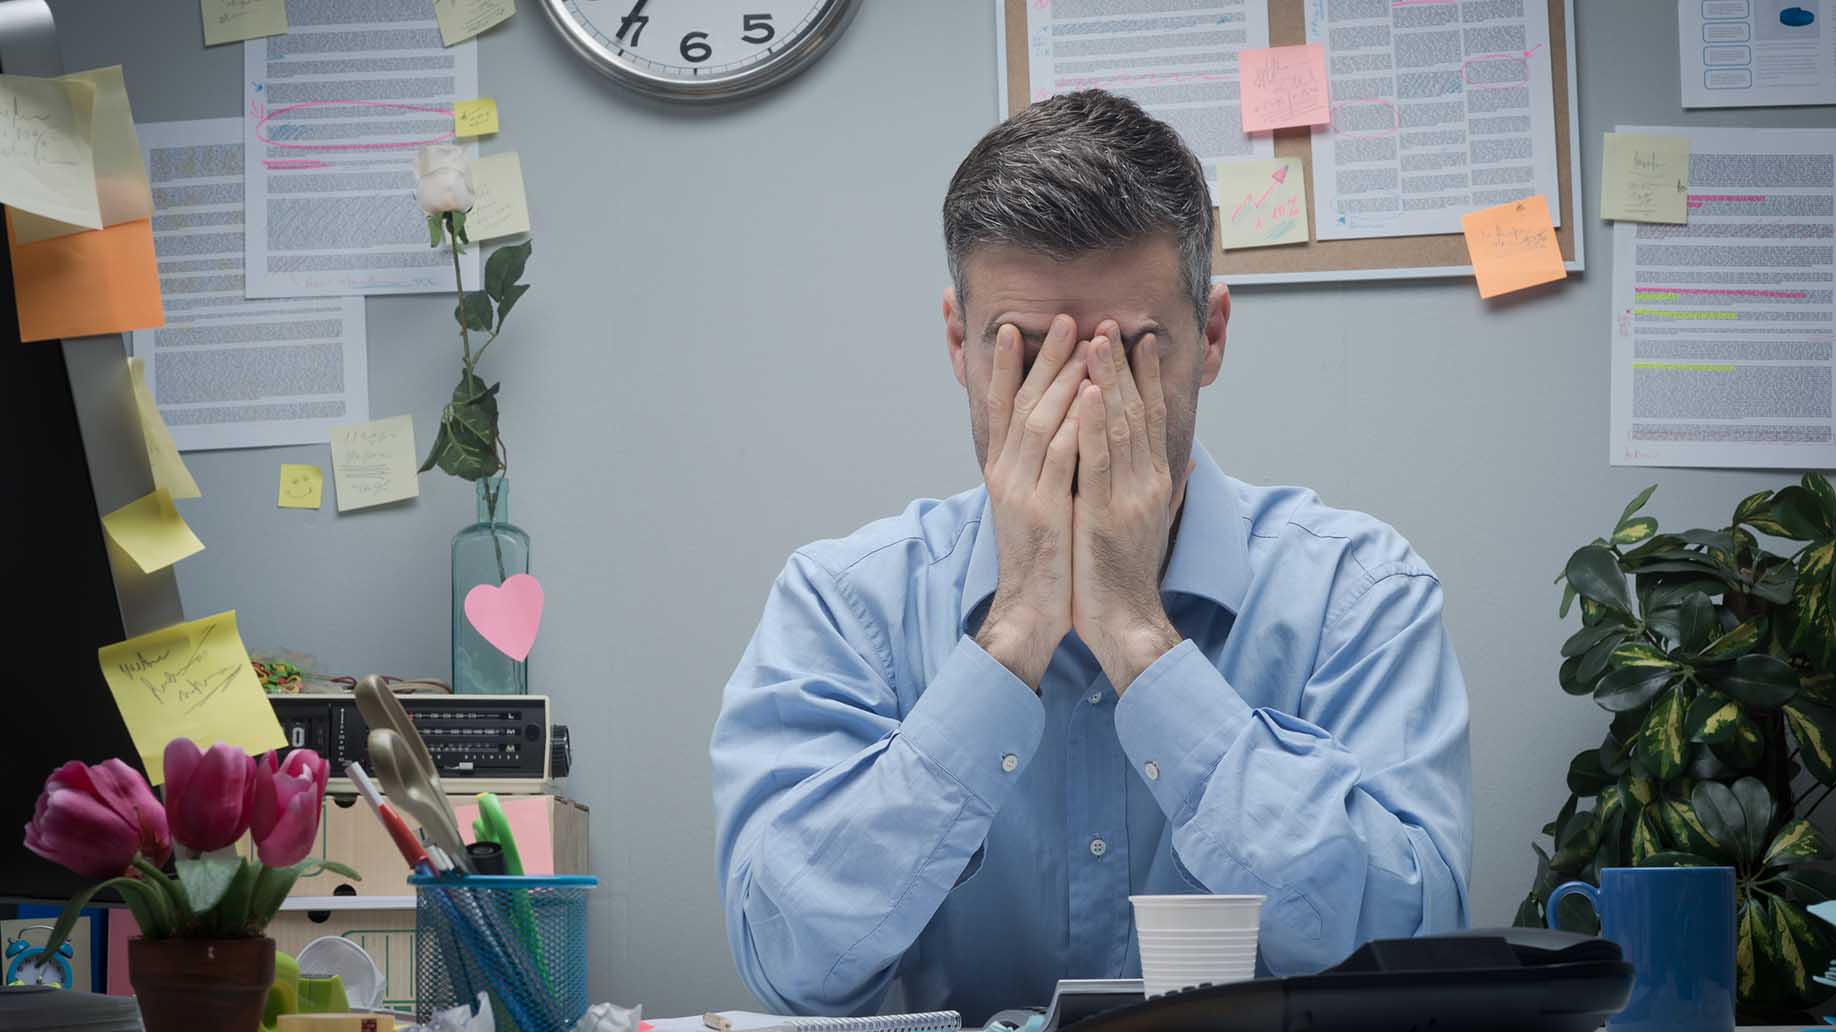 exhausted office worker with hands in head problematic